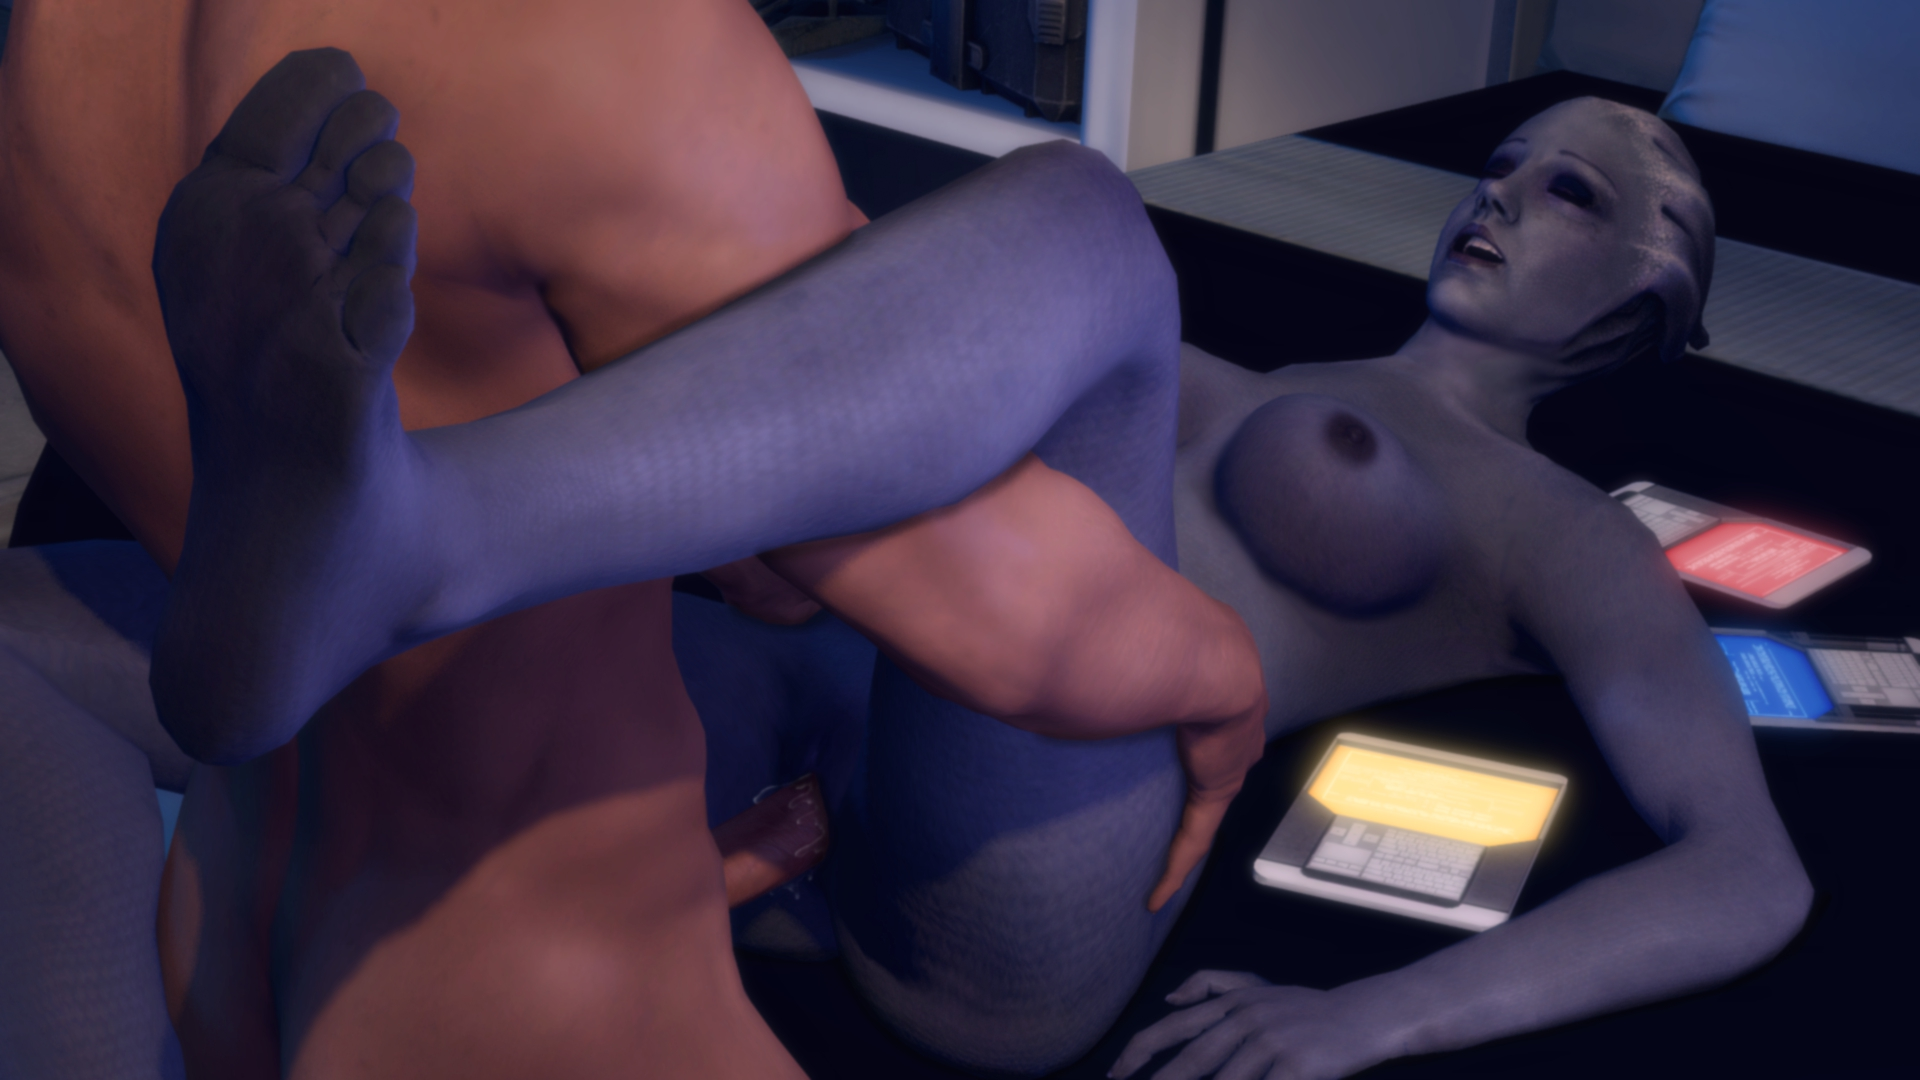 Liara mass effect nude animated sex scene nackt image